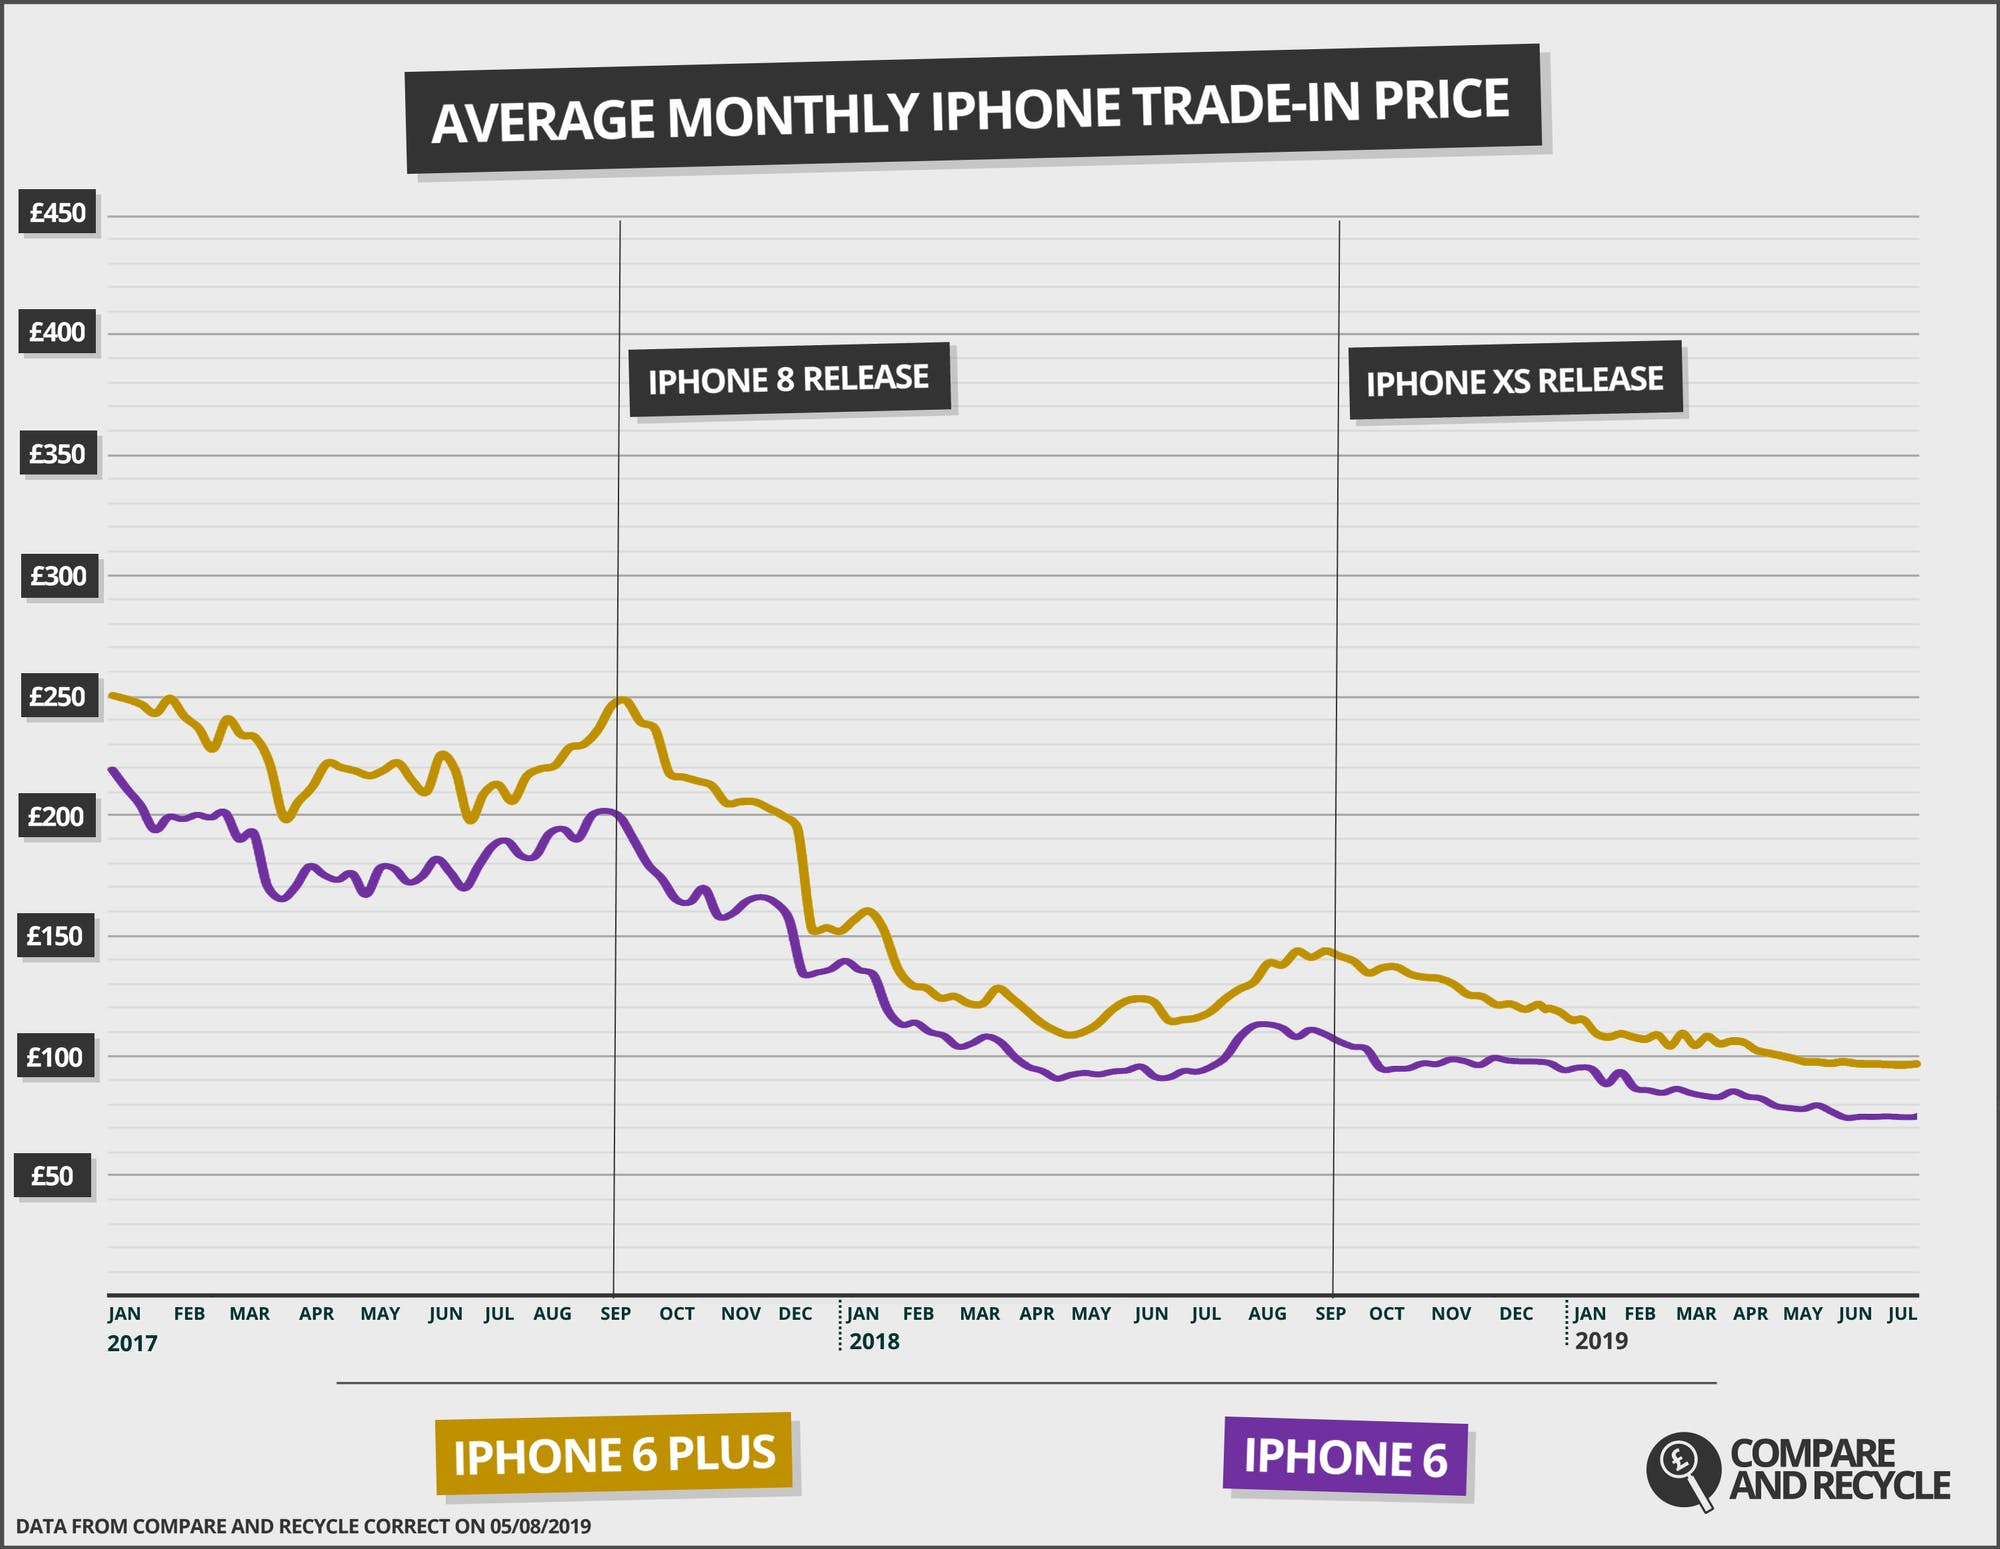 iPhone 6 and iPhone 6 Plus recycling price dynamics over the last two years. Source: Compare and Recycle